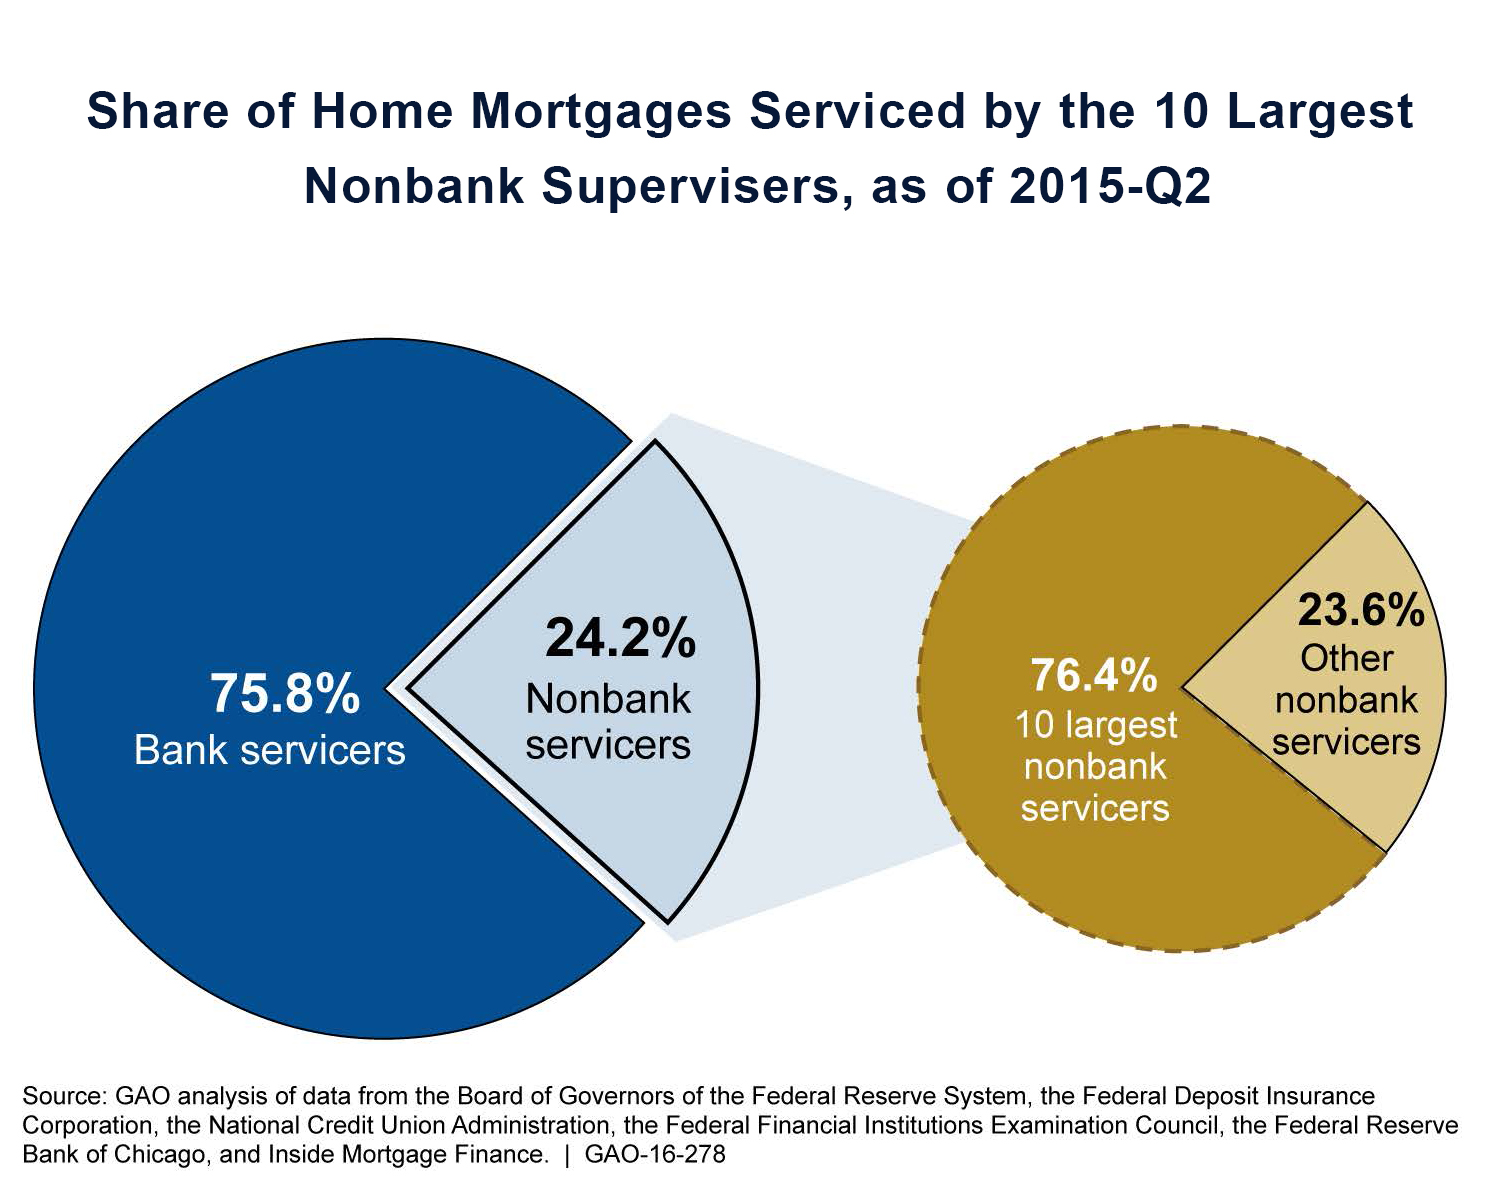 GAO-16-278, Nonbank Mortgage Servicers- Existing Regulatory Oversight Could Be Strengthened.jpg